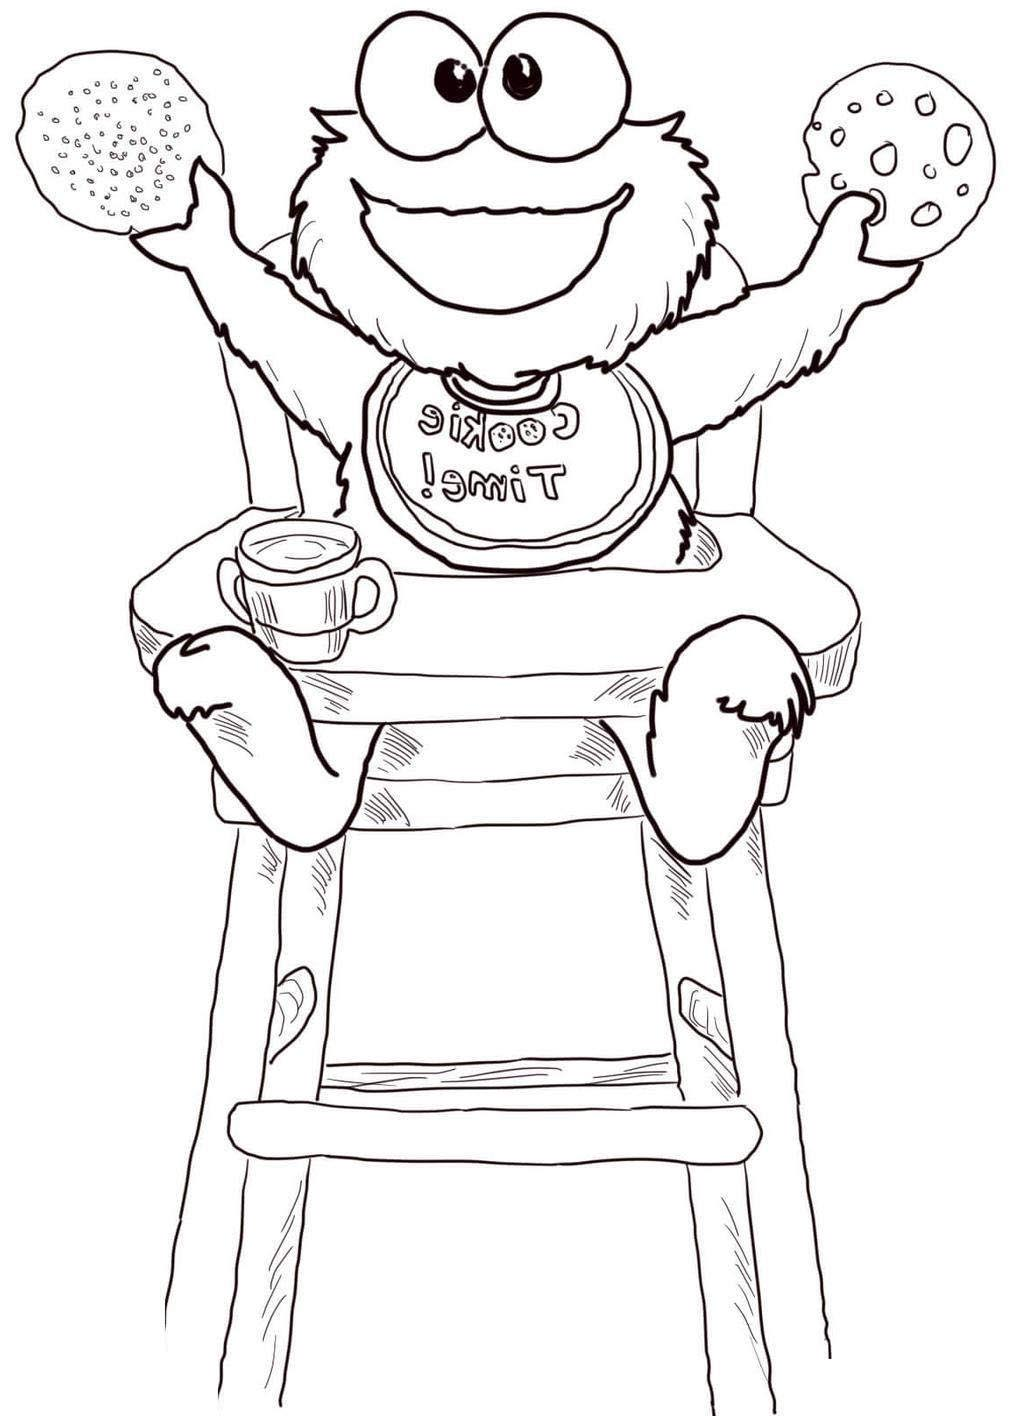 Cookie Monster Coloring Pages Time Black and White - Free ...